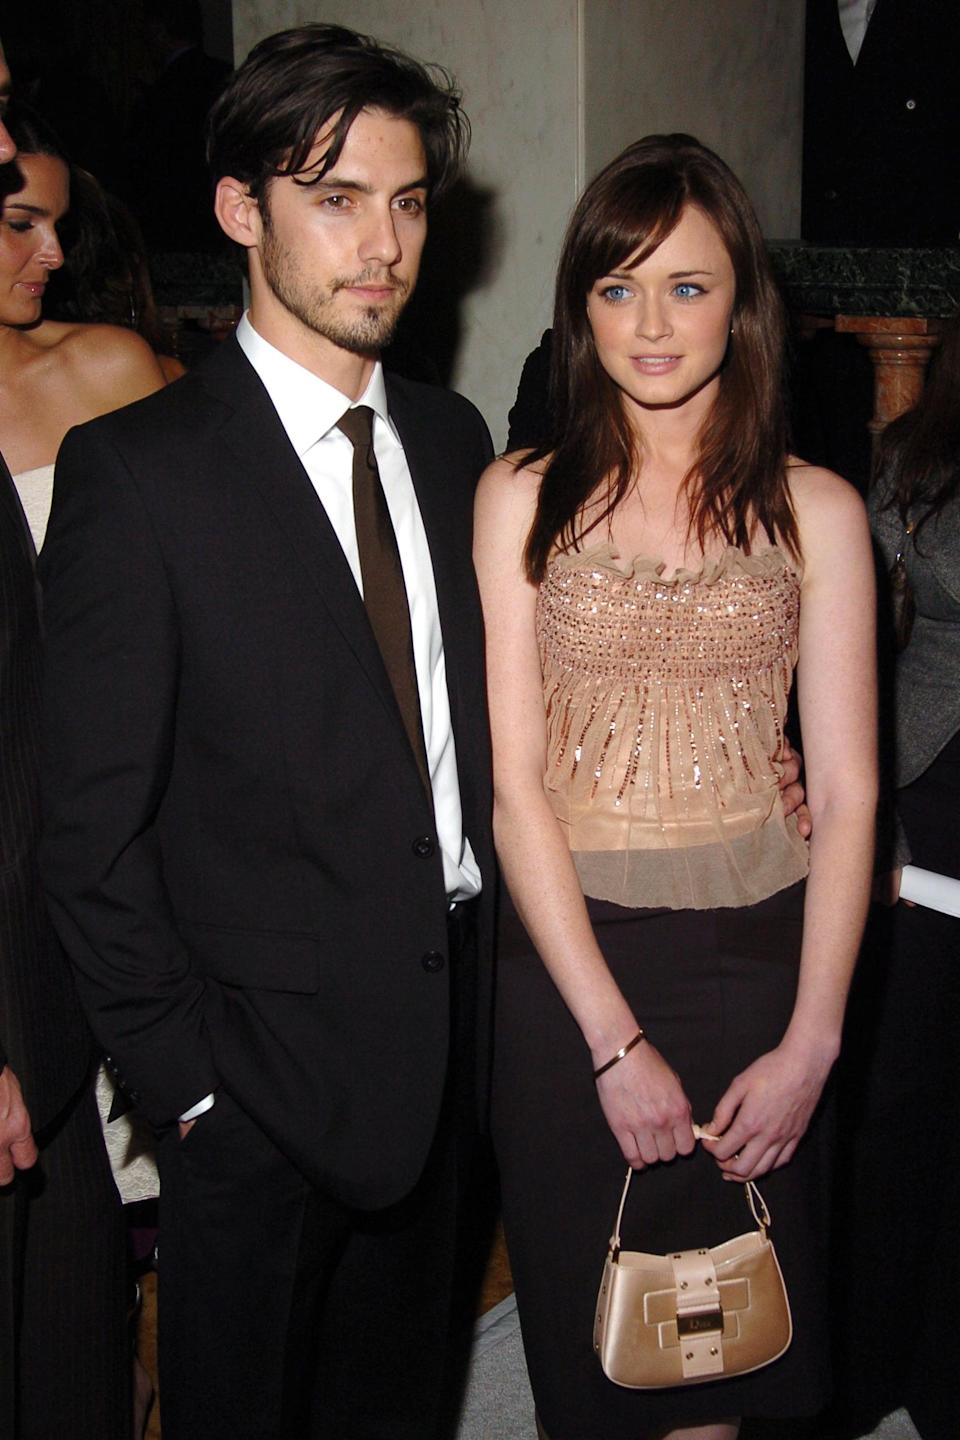 """<p>Hayden wasn't the only costar Milo ever dated. Before <strong>Heroes</strong>, Milo got together with his onscreen love interest Alexis on <strong><a class=""""link rapid-noclick-resp"""" href=""""https://www.popsugar.co.uk/Gilmore-Girls"""" rel=""""nofollow noopener"""" target=""""_blank"""" data-ylk=""""slk:Gilmore Girls"""">Gilmore Girls</a></strong>. The actors dated for over three years until - just like their characters, Jess and Rory - the couple parted ways in 2006. A decade later, they ended up reuniting for the show's 2016 Netflix reboot, <strong>Gilmore Girls: A Year in the Life</strong><em>.</em></p> <p>Though <a href=""""http://www.indiewire.com/2016/11/gilmore-girls-alexis-bledel-netflix-revival-rory-boyfriends-1201747401/"""" class=""""link rapid-noclick-resp"""" rel=""""nofollow noopener"""" target=""""_blank"""" data-ylk=""""slk:Alexis didn't explicitly comment on her experience"""">Alexis didn't explicitly comment on her experience</a> working with Milo 10 years after their breakup, she did say during the Television Critics Association press tour in July 2016 that """"it was great to work with all of them again,"""" referring to all of Rory's past lovers who appeared in the revival. </p> <p>It doesn't seem Milo has any hard feelings, either. Following Alexis' win at the 2017 Primetime Emmy Awards for outstanding guest actress in a drama series for her performance in <strong><a class=""""link rapid-noclick-resp"""" href=""""https://www.popsugar.co.uk/The-Handmaid%E2%80%99s-Tale"""" rel=""""nofollow noopener"""" target=""""_blank"""" data-ylk=""""slk:The Handmaid's Tale"""">The Handmaid's Tale</a></strong>, Milo told <strong>The Daily Dish</strong> that <a href=""""http://www.bravotv.com/the-daily-dish/is-milo-ventimiglia-jealous-of-alexis-bledels-emmy-win"""" class=""""link rapid-noclick-resp"""" rel=""""nofollow noopener"""" target=""""_blank"""" data-ylk=""""slk:he was very happy for her"""">he was very happy for her</a>. """"She's always been a great actor,"""" he added. <br></p>"""